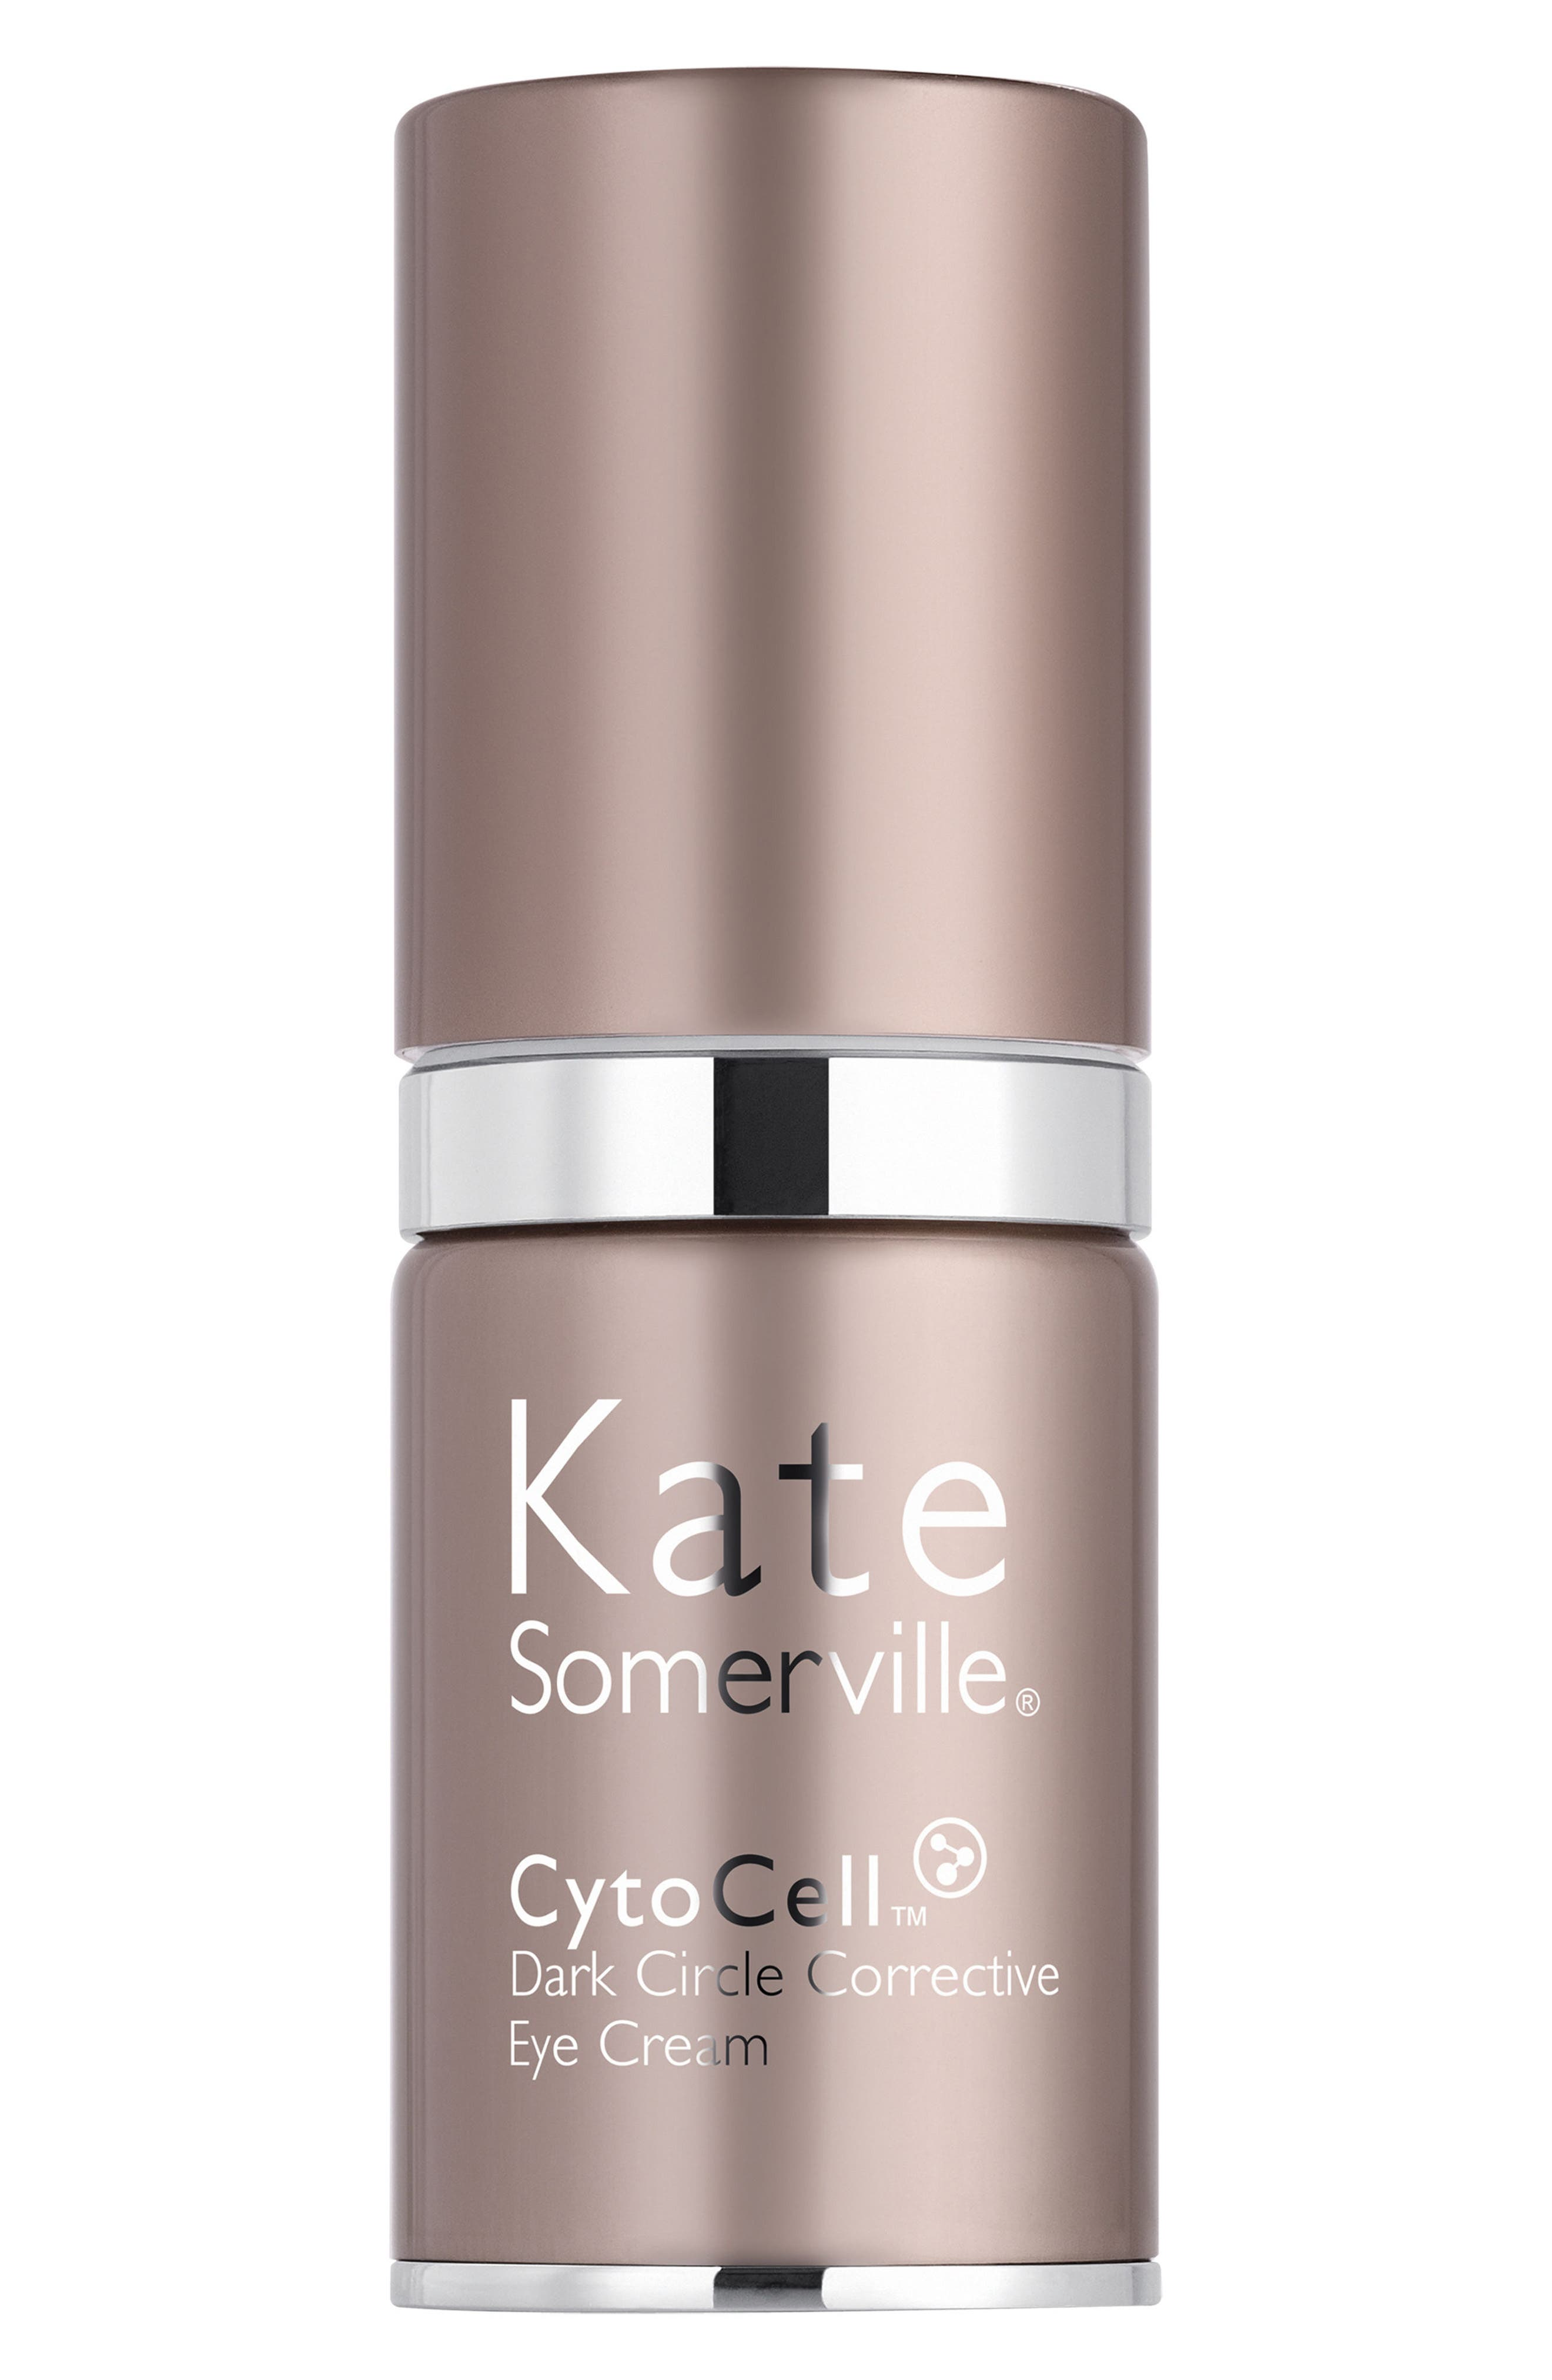 Kate Somerville® 'CytoCell' Dark Circle Corrective Eye Cream